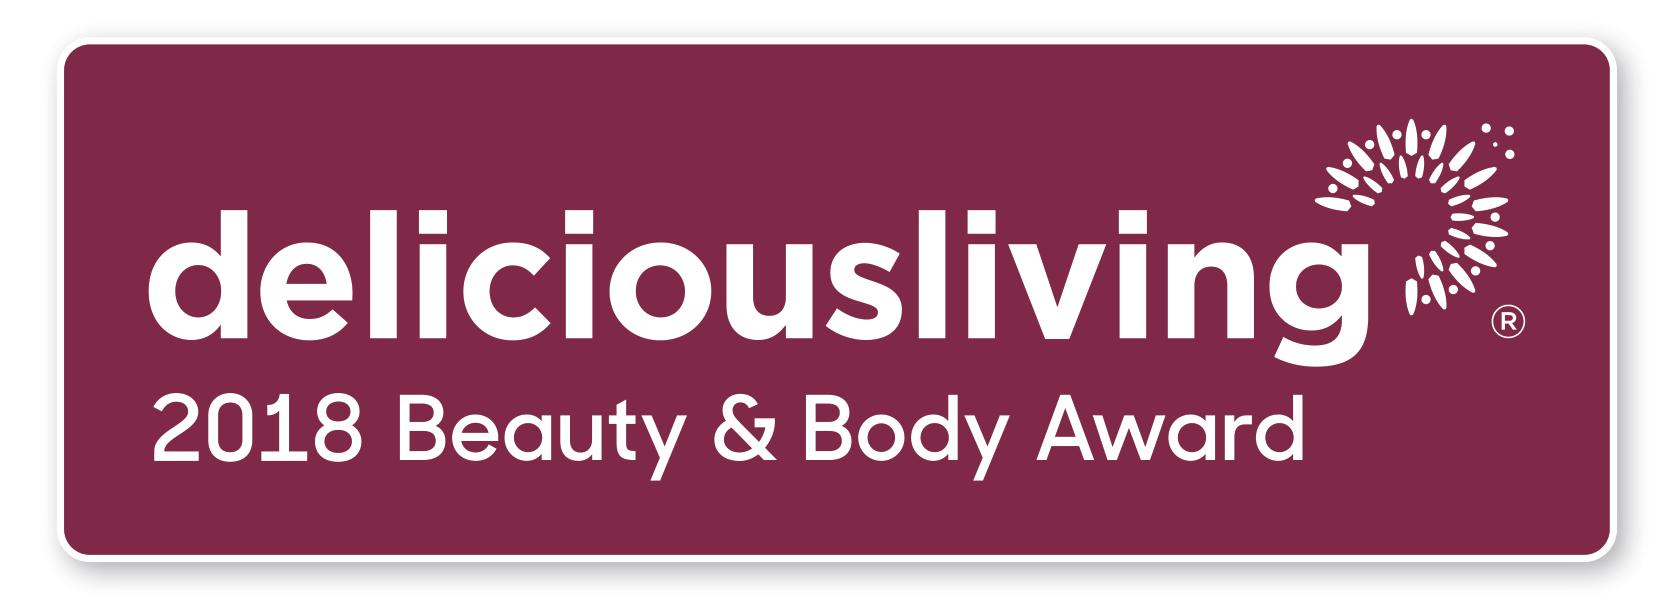 2018beautybodyawardlogo.jpg